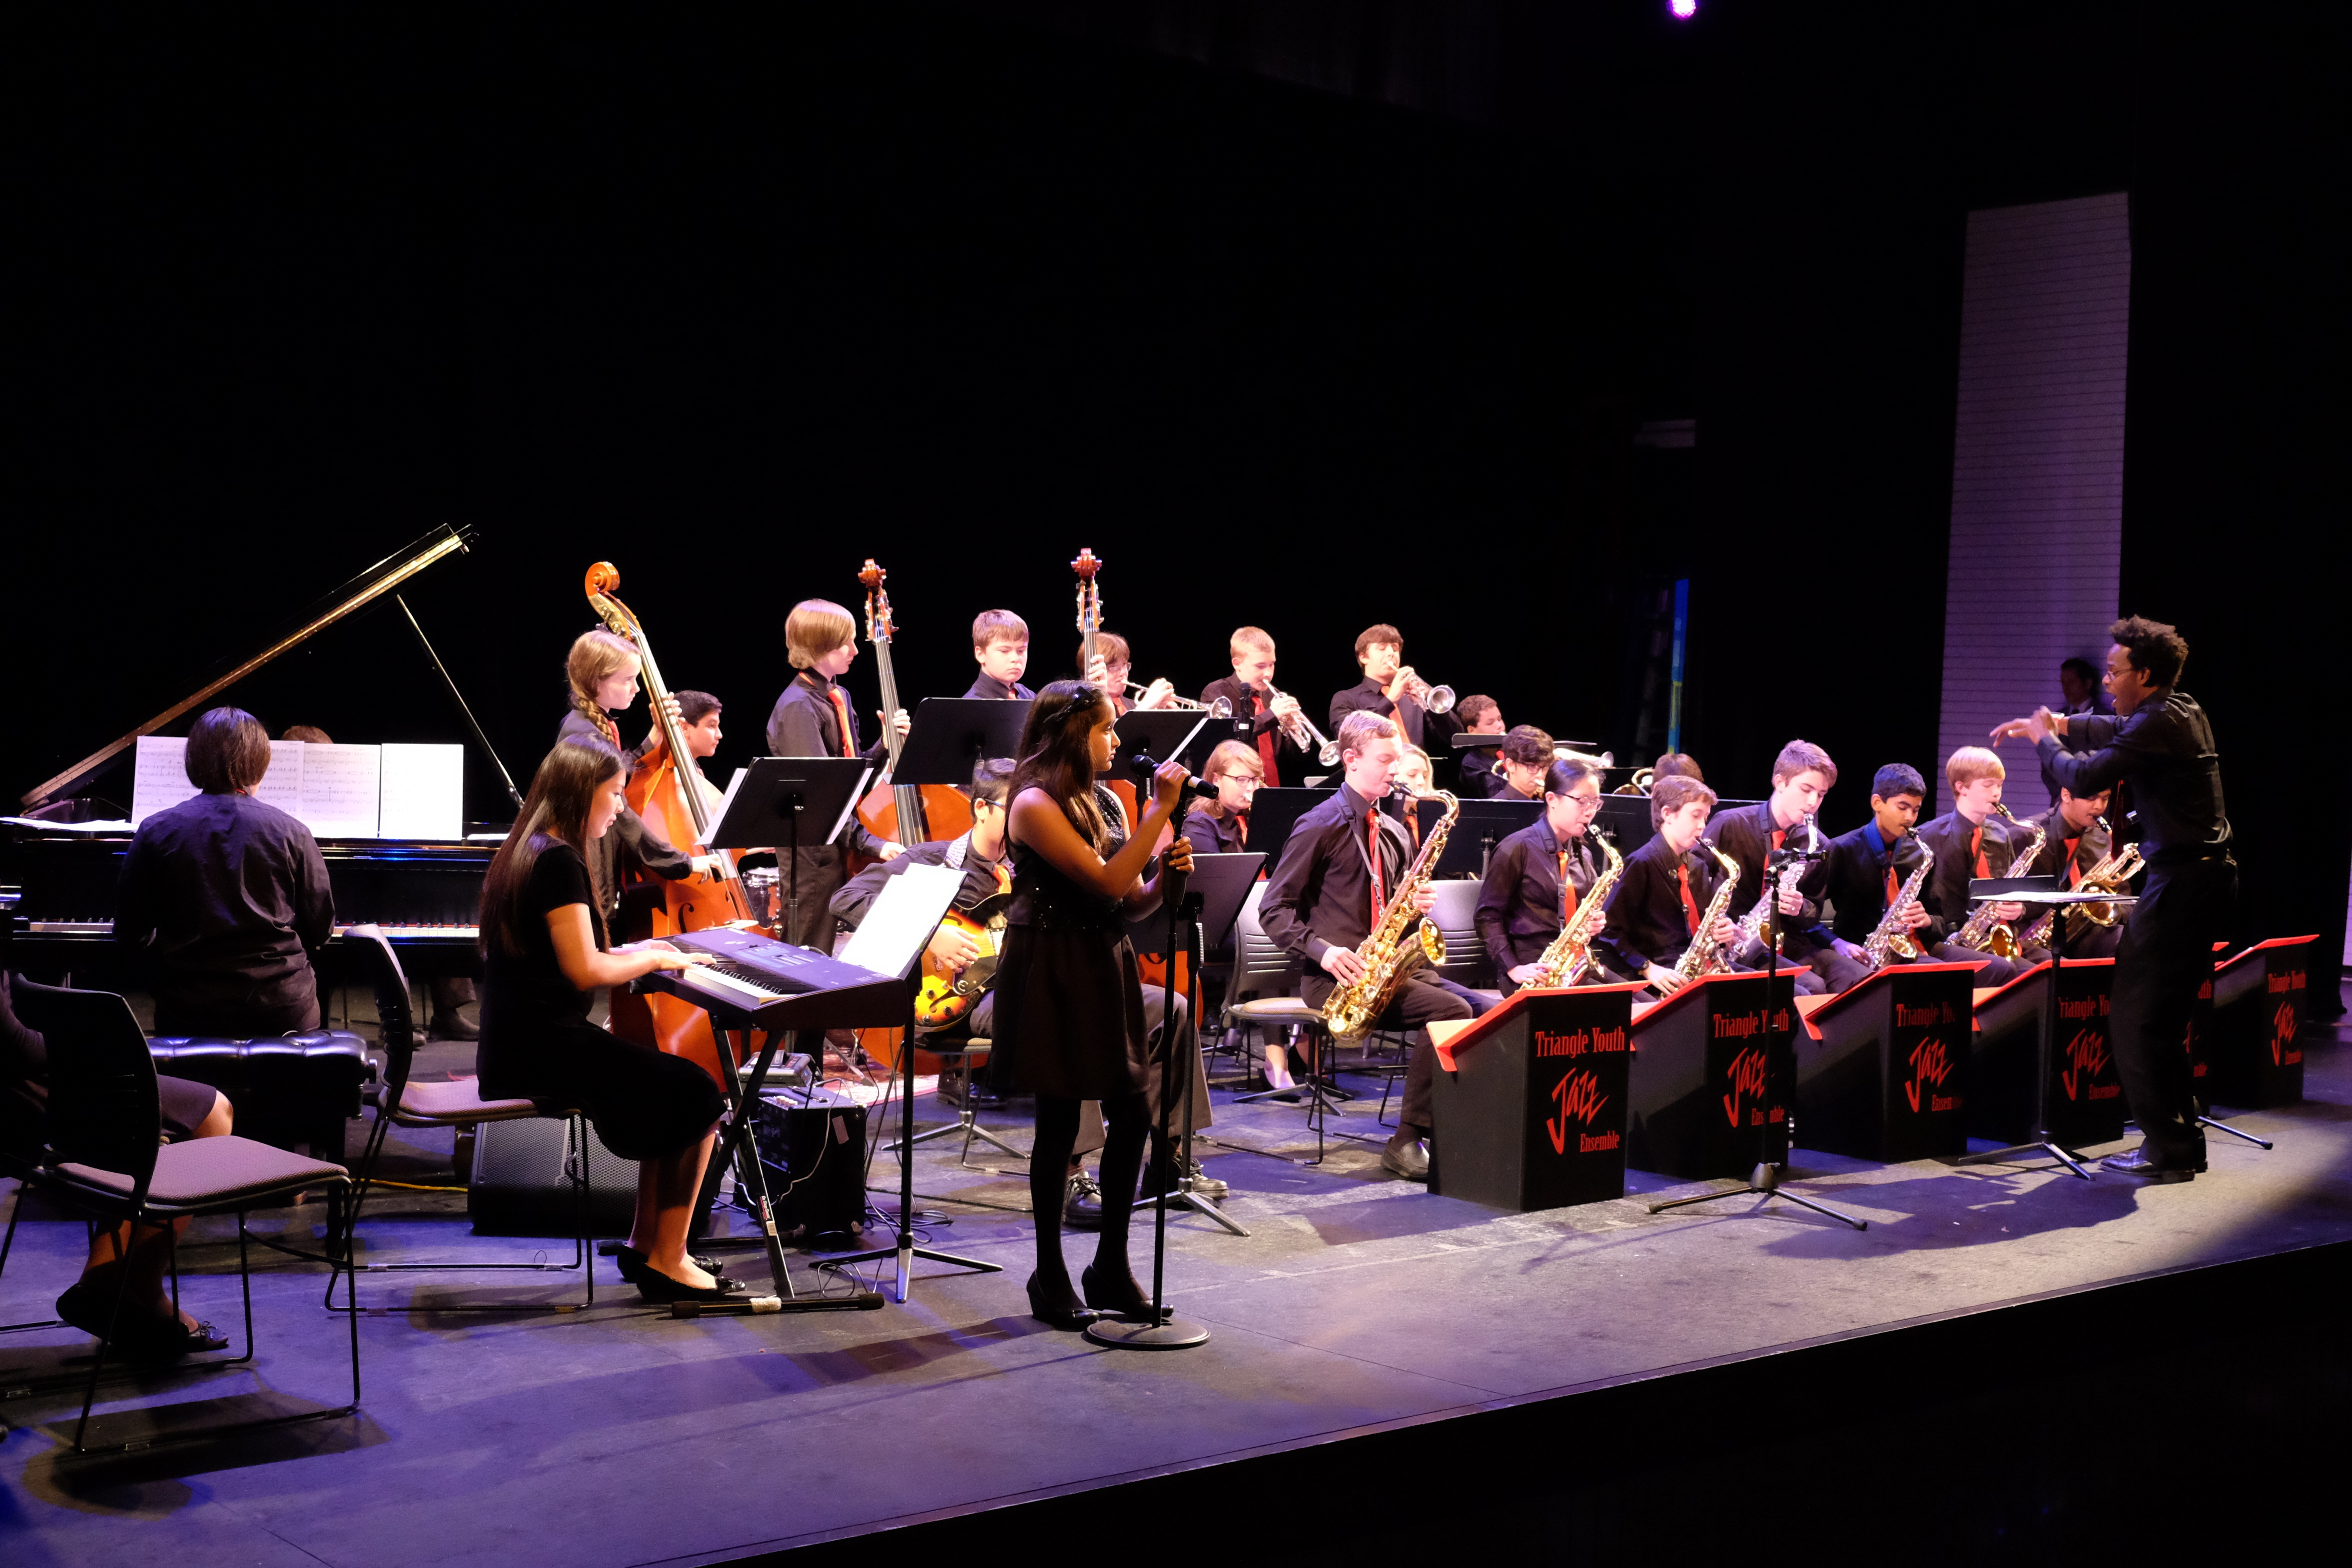 photo of entire jazz band on stage during concert